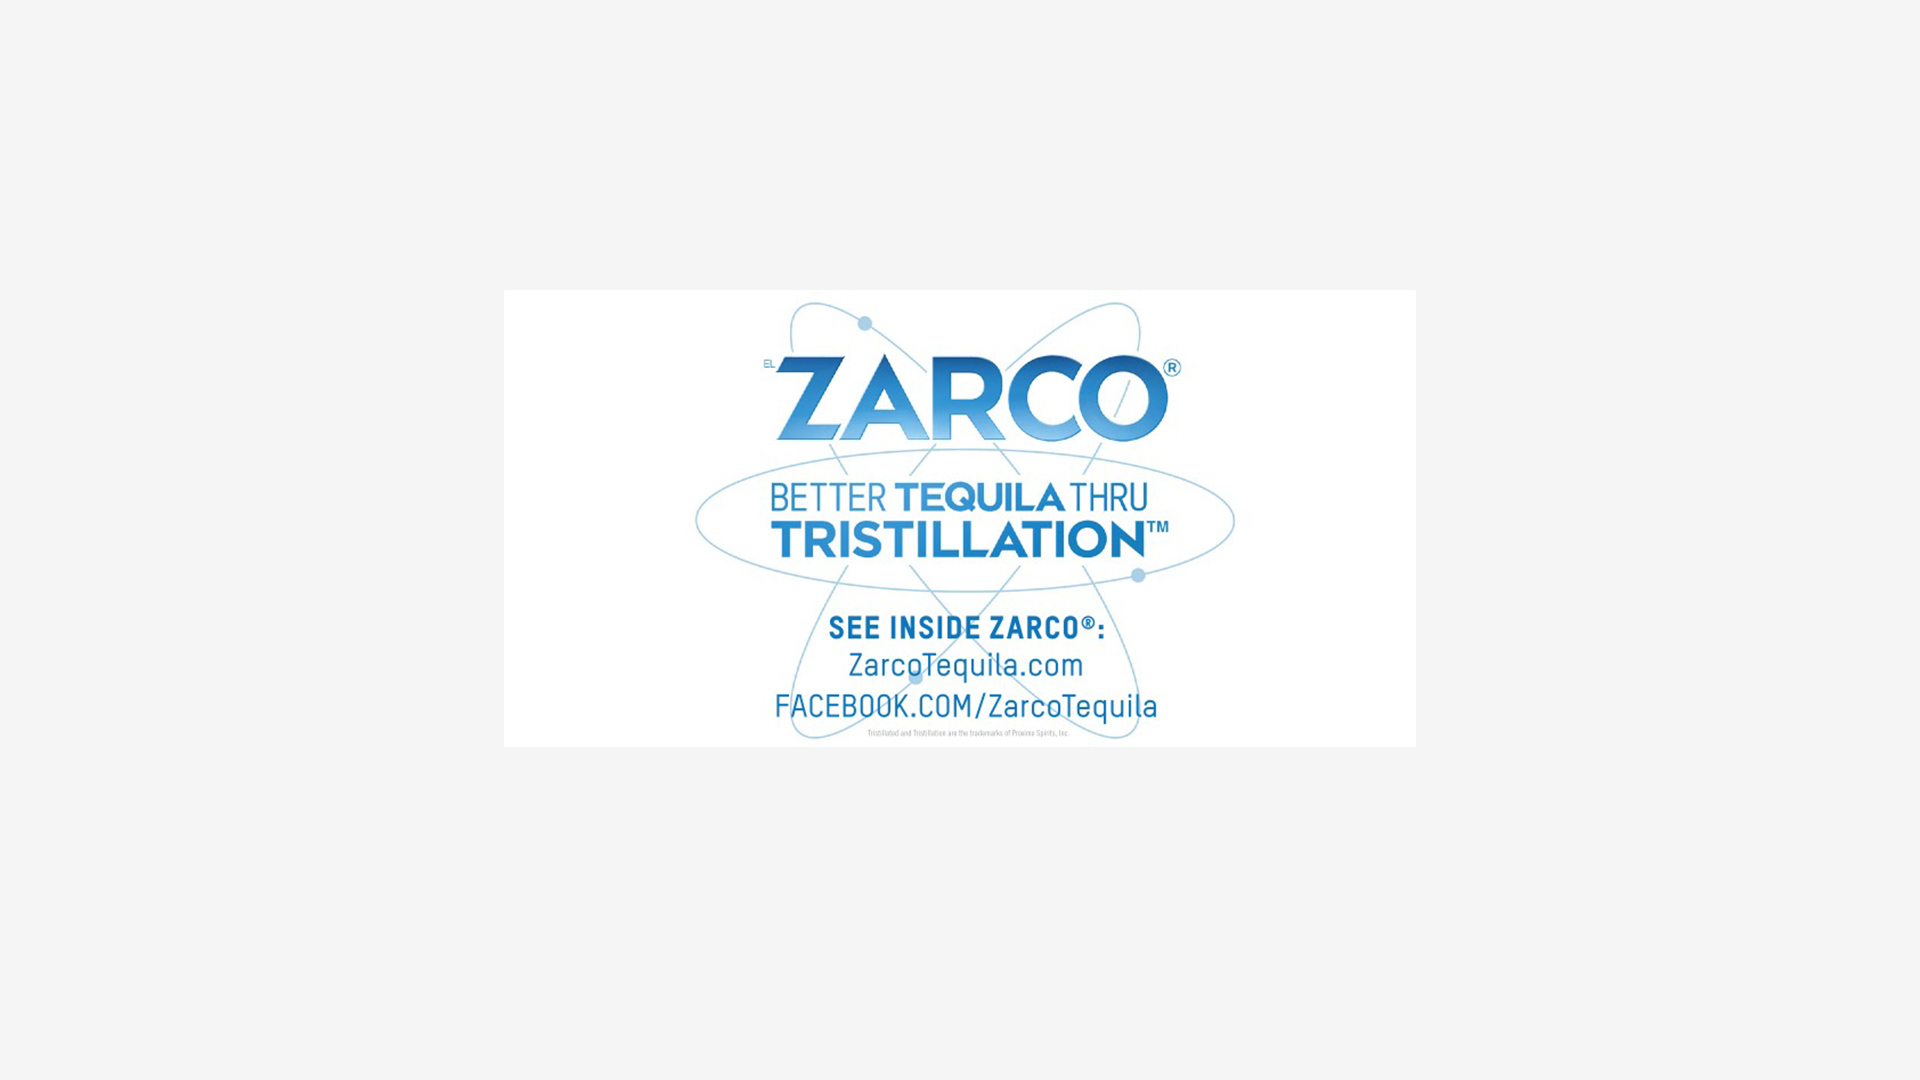 Zarco Activation